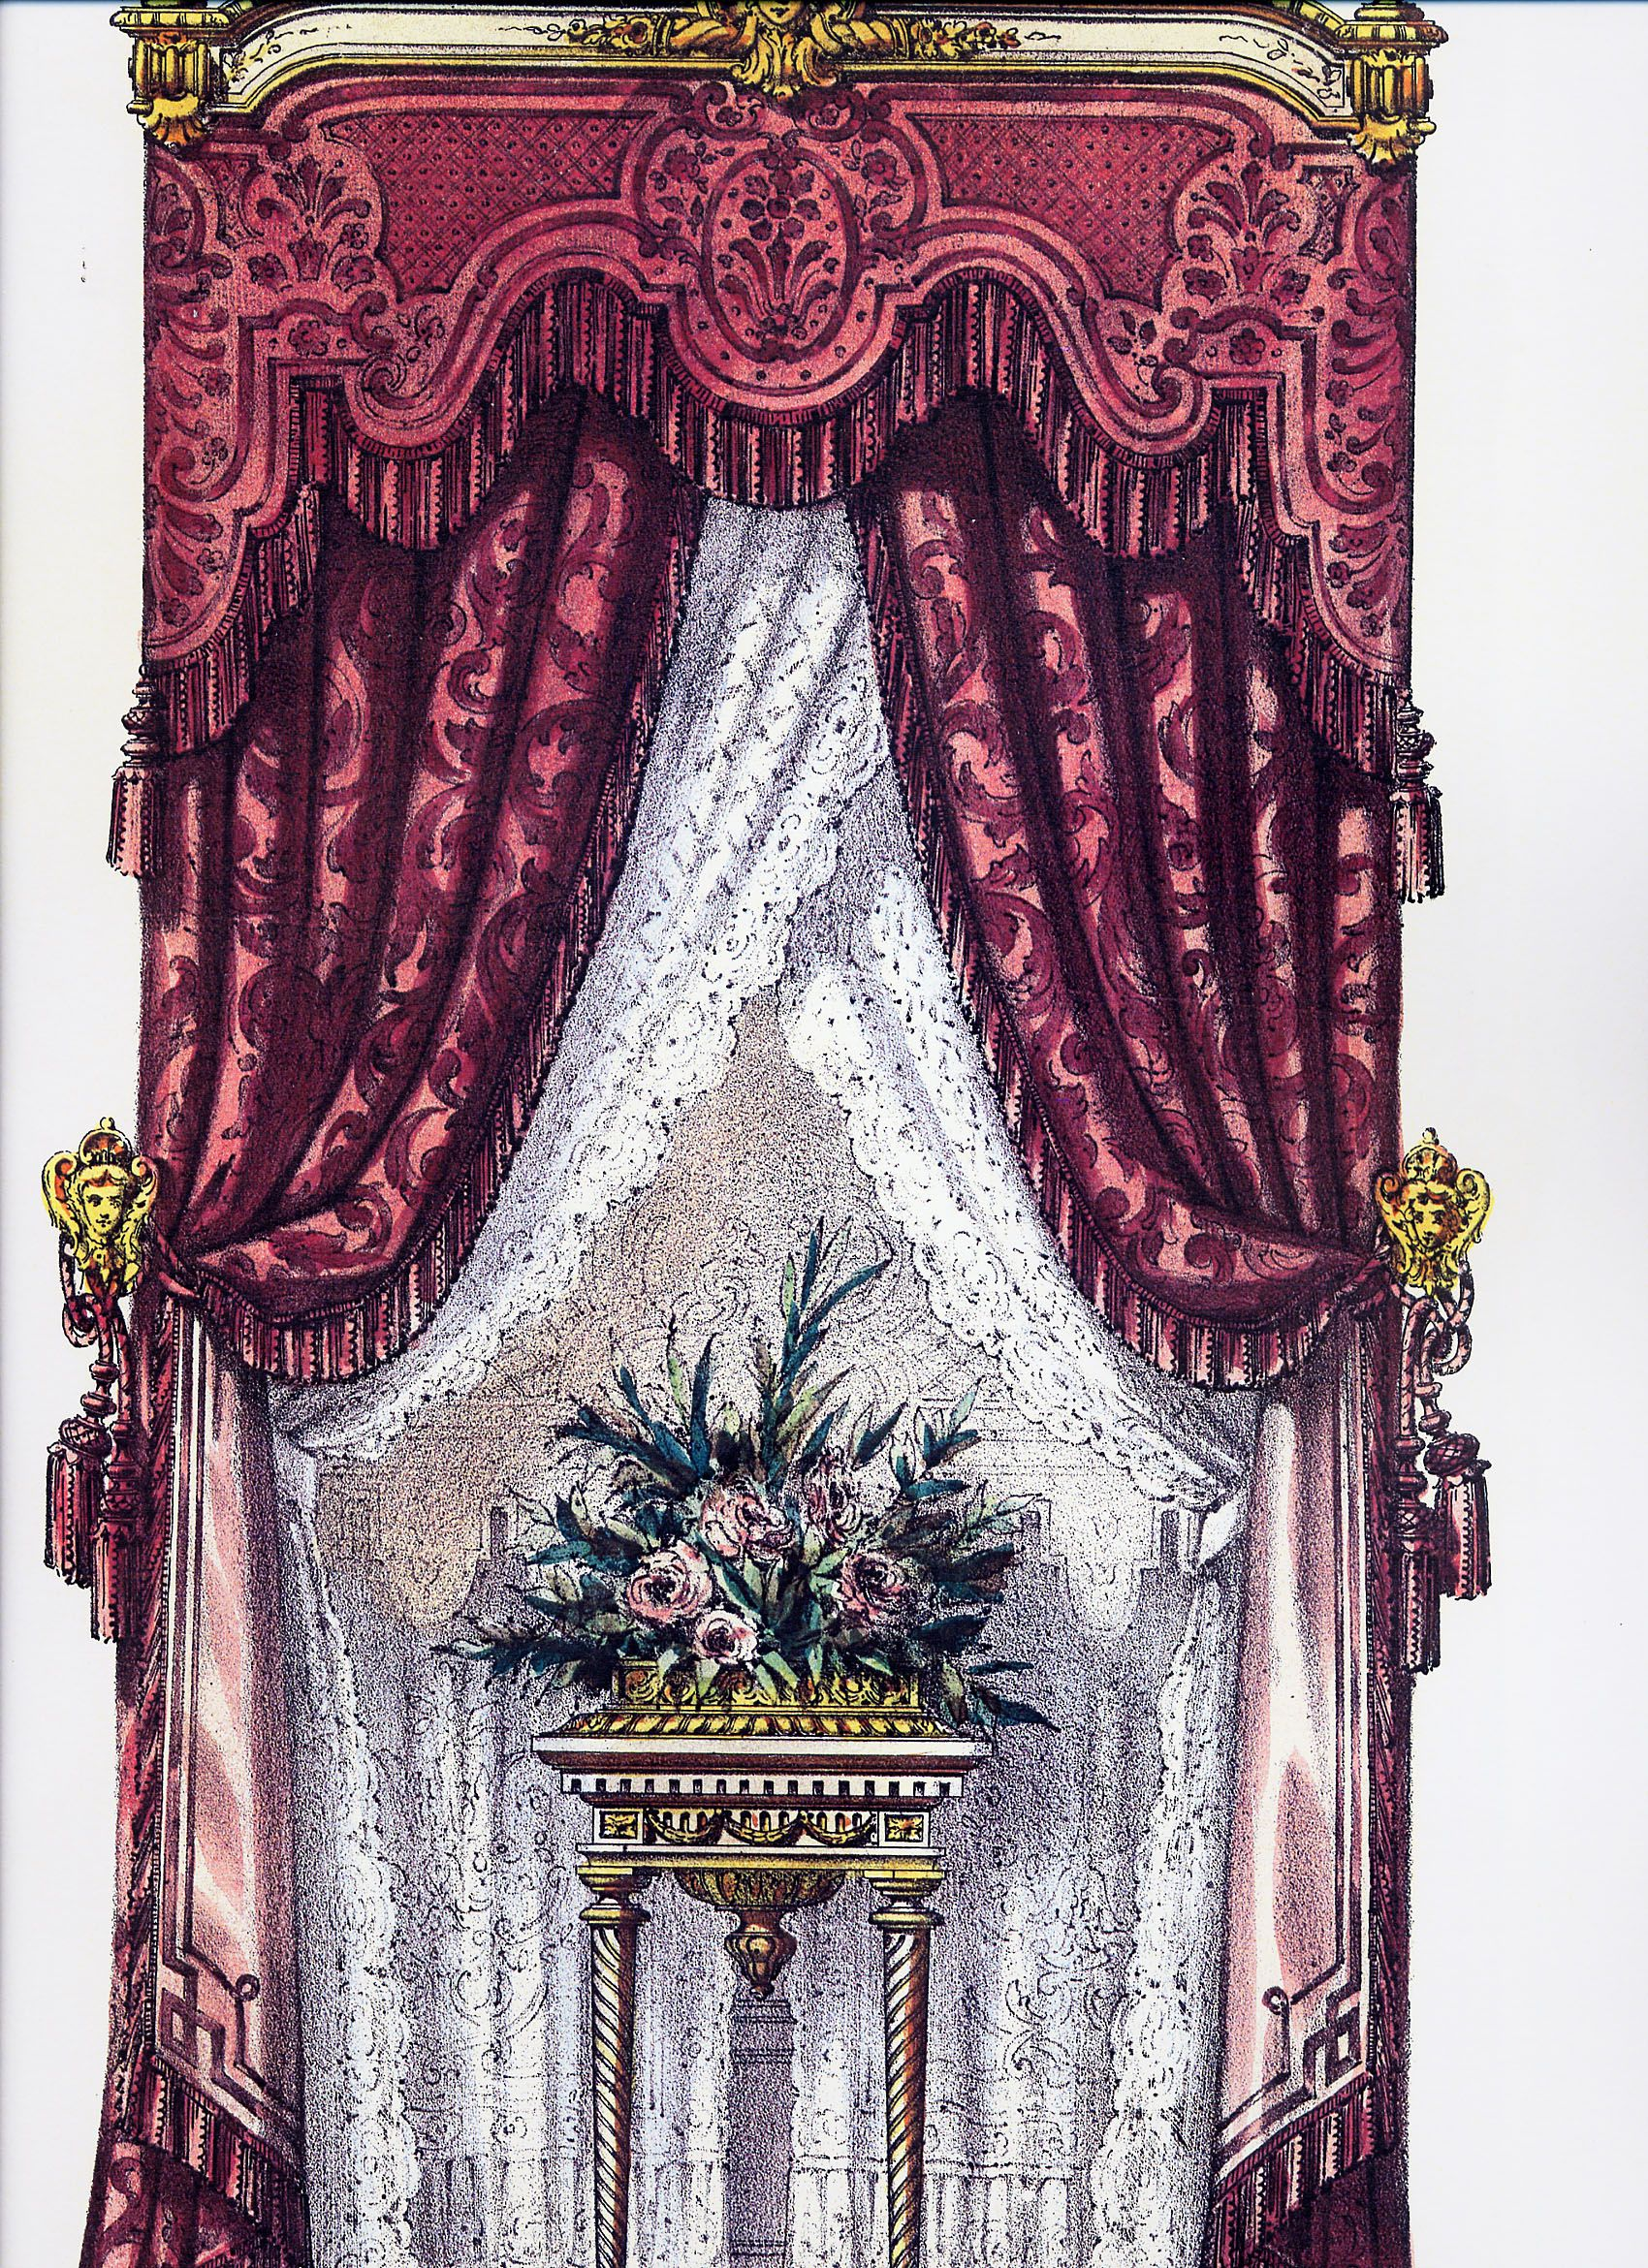 bedrooms post bedroom beds drapes category home frame victorian style elegant stunning with canopy voodoolk exciting for design magnificent